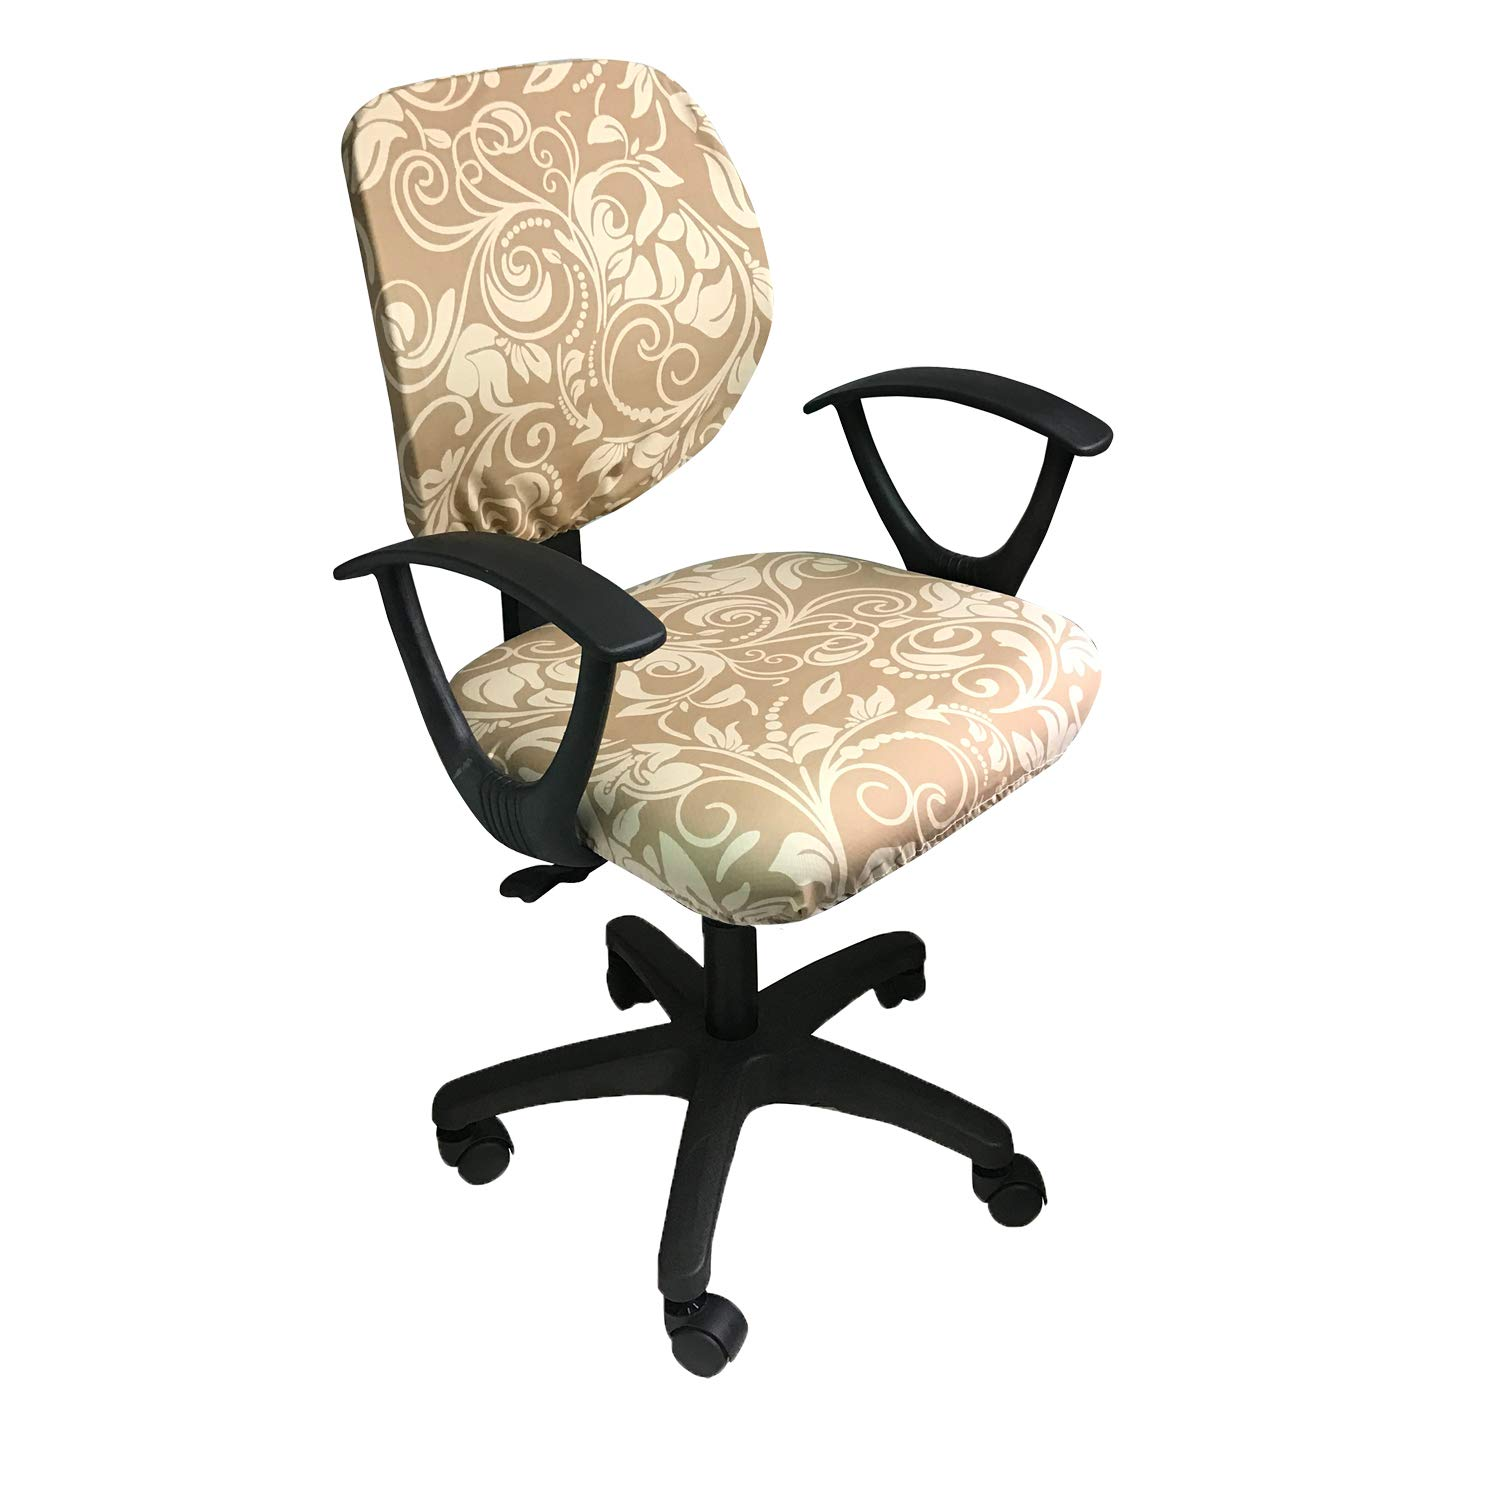 MOCAA Computer Office Chair Covers Universal Stretchable Polyester Washable Rotating Chair Slipcovers,ONLY Chair Covers (Color 1)